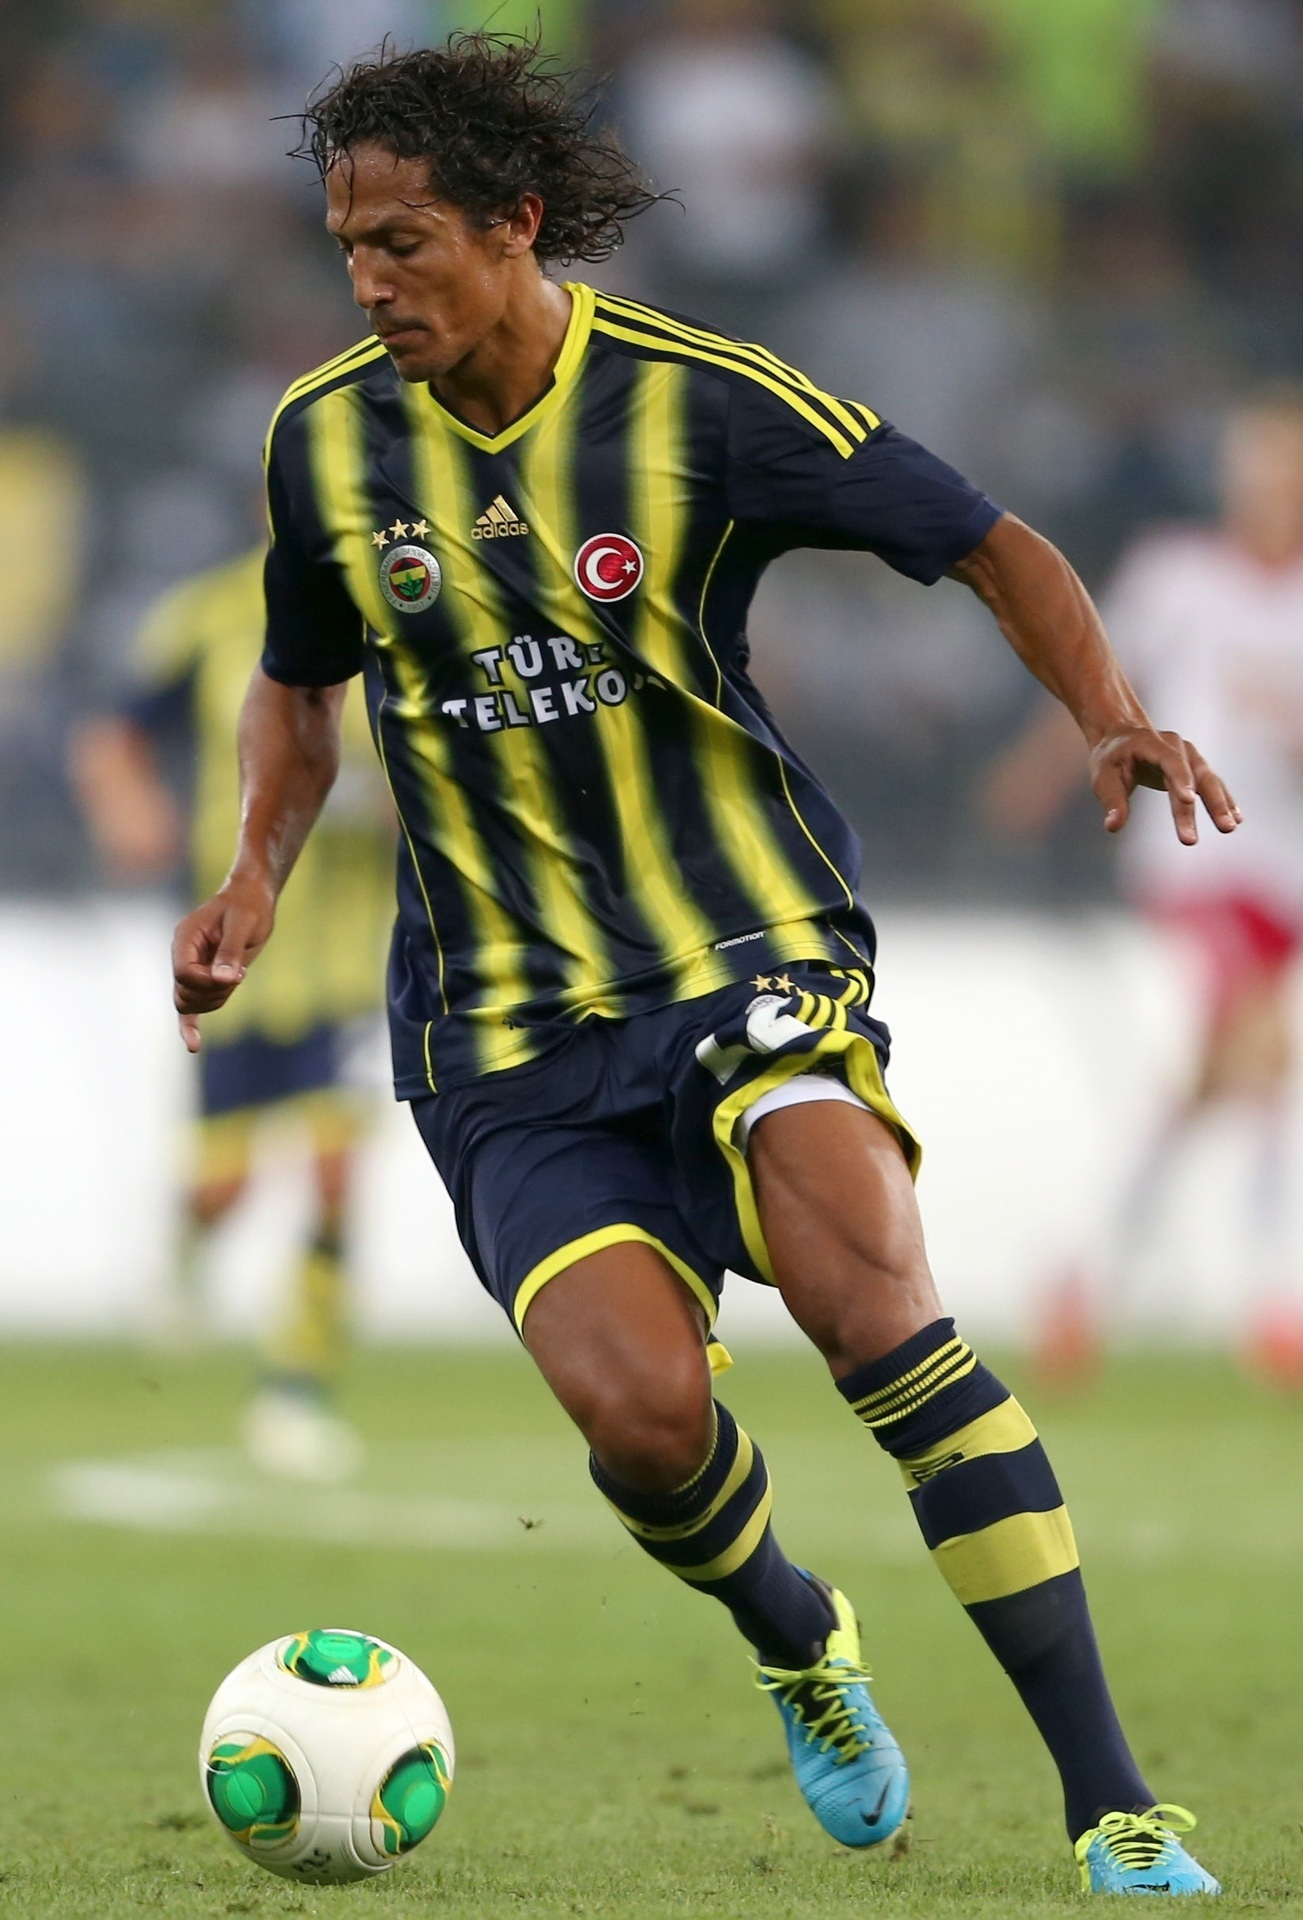 Fenerbahce-13-14-adidas-home-kit-Bruno-Alves.jpg